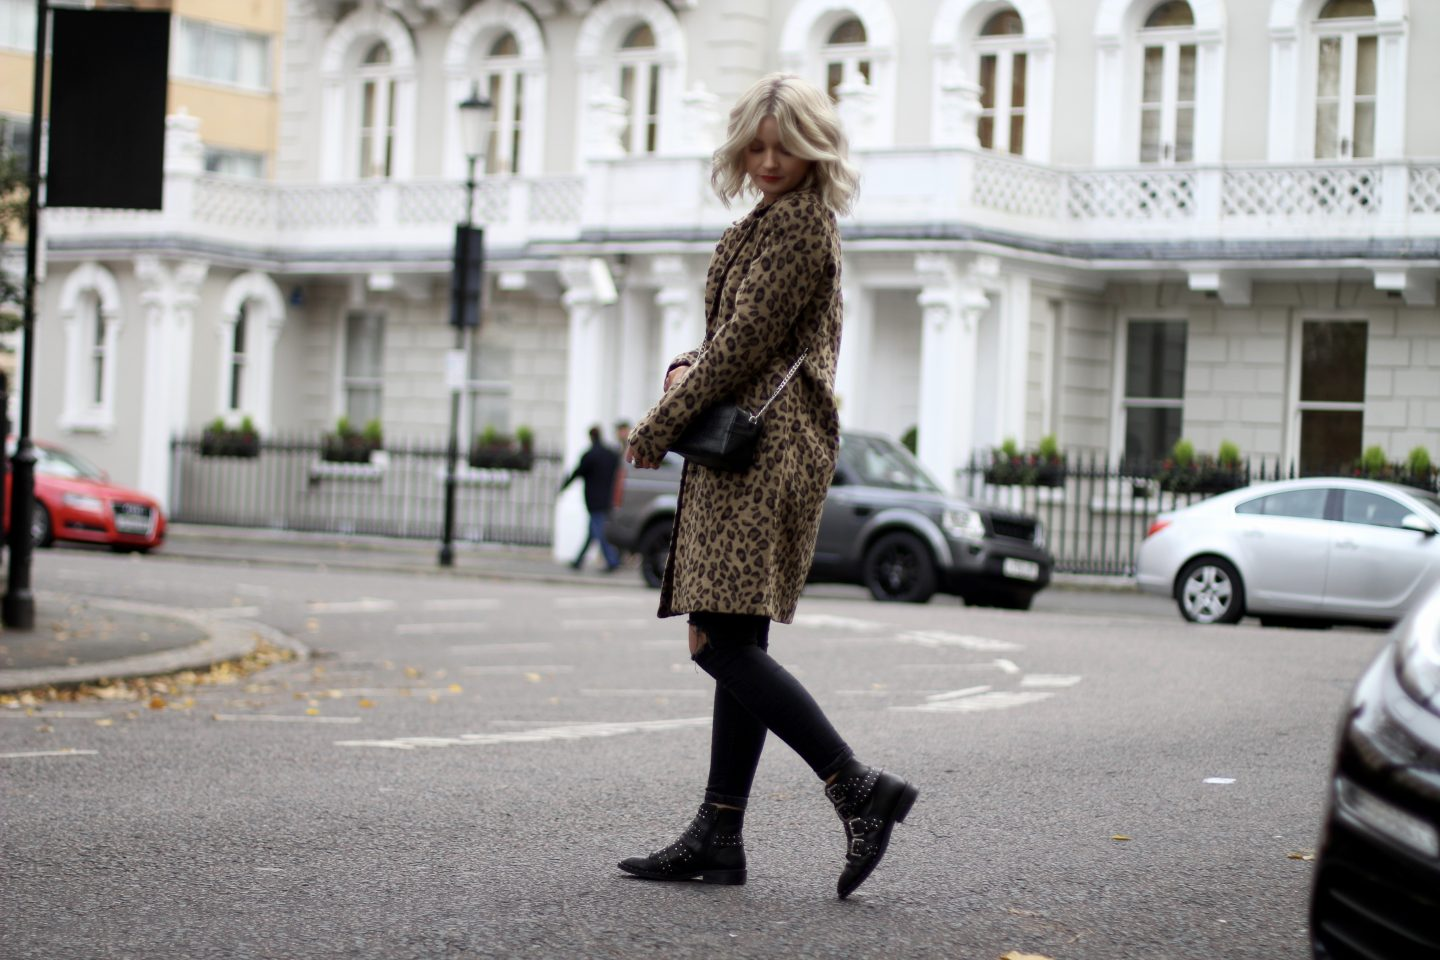 STYLE // INCORPORATING LEOPARD PRINT IN TO YOUR WARDROBE